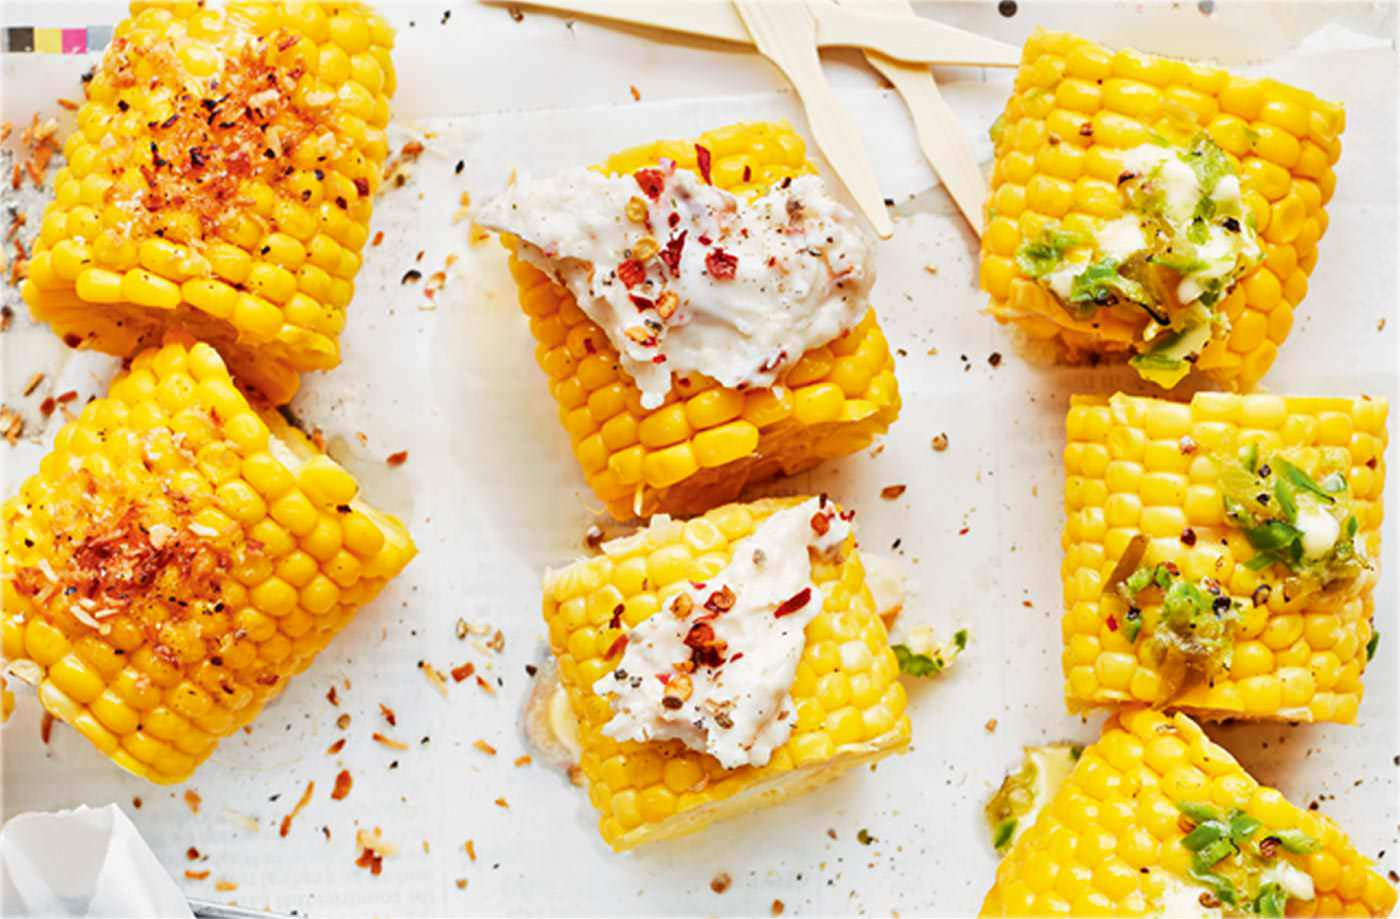 Pick 'n' mix corn